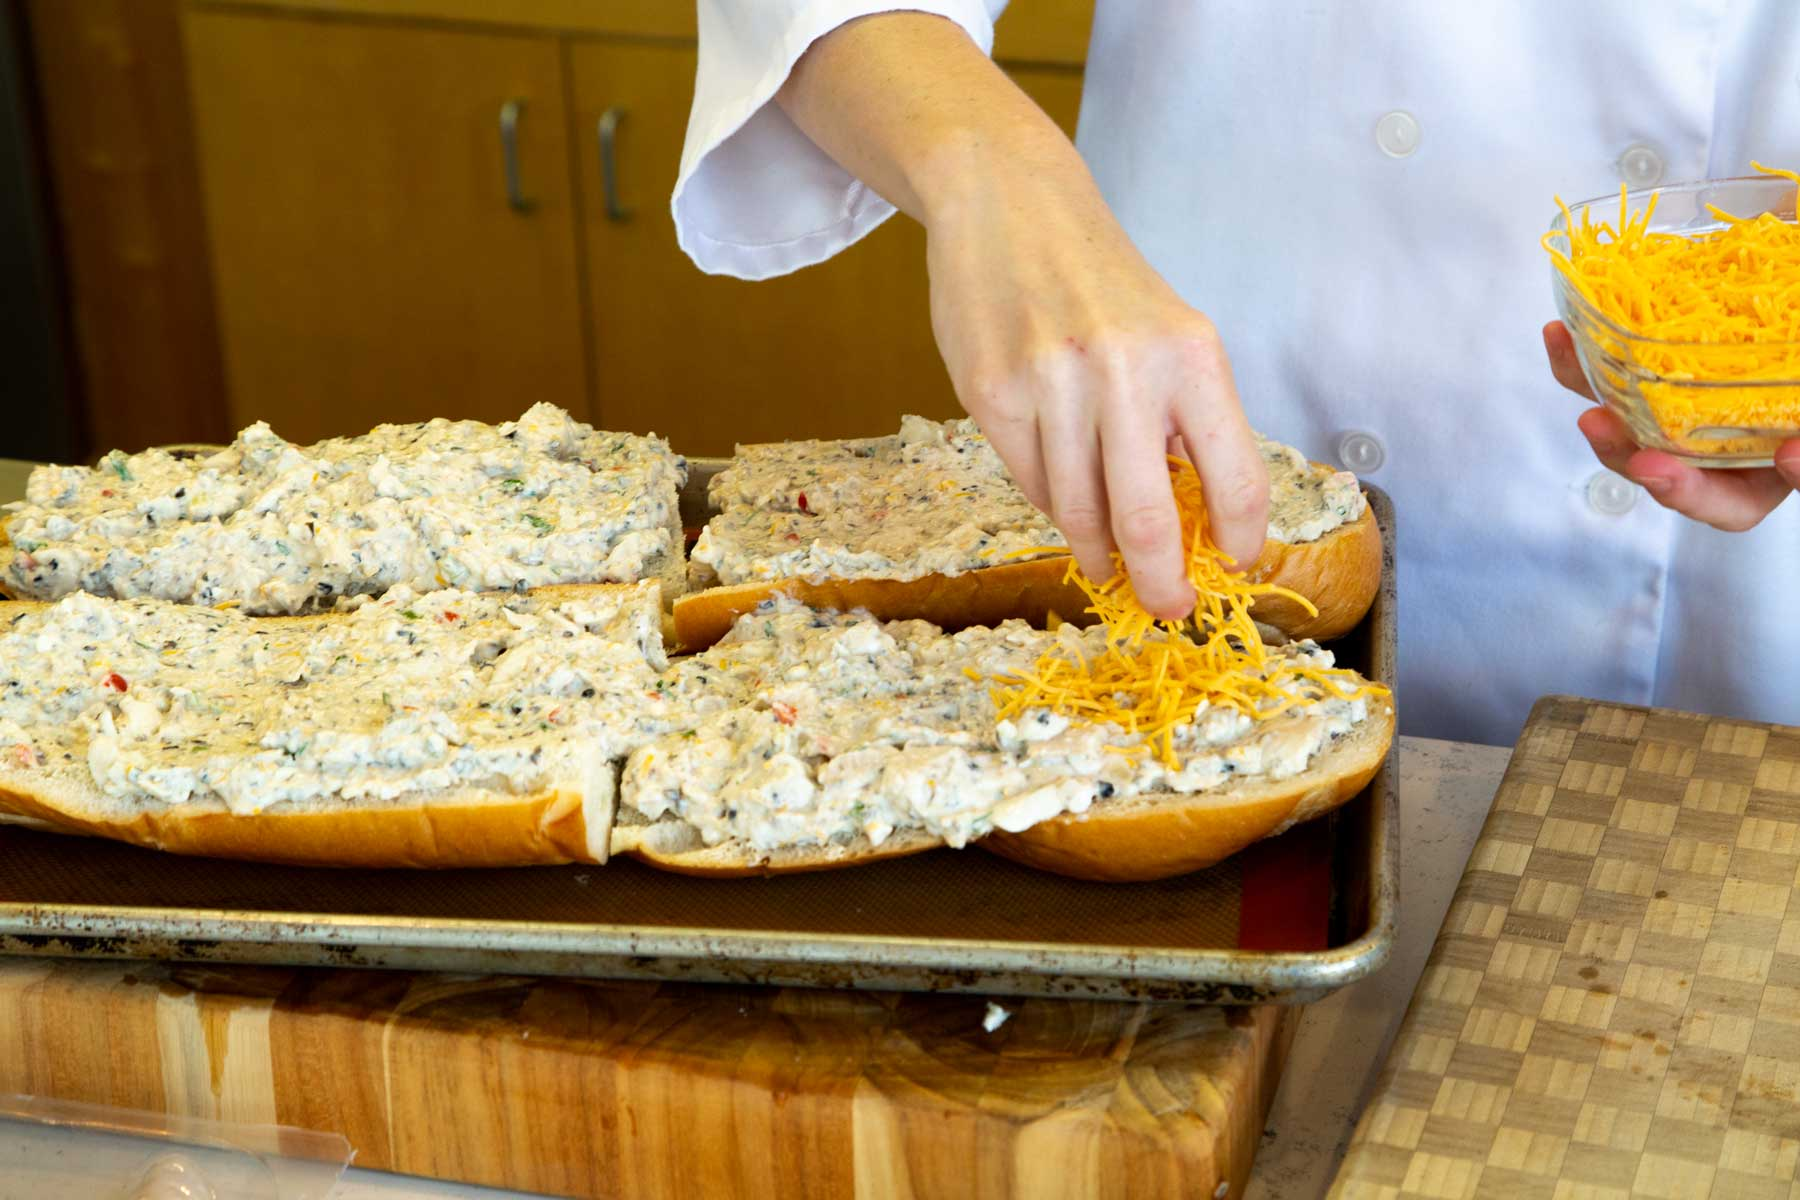 Catfish spread on french bread, sprinkling cheddar cheese on top